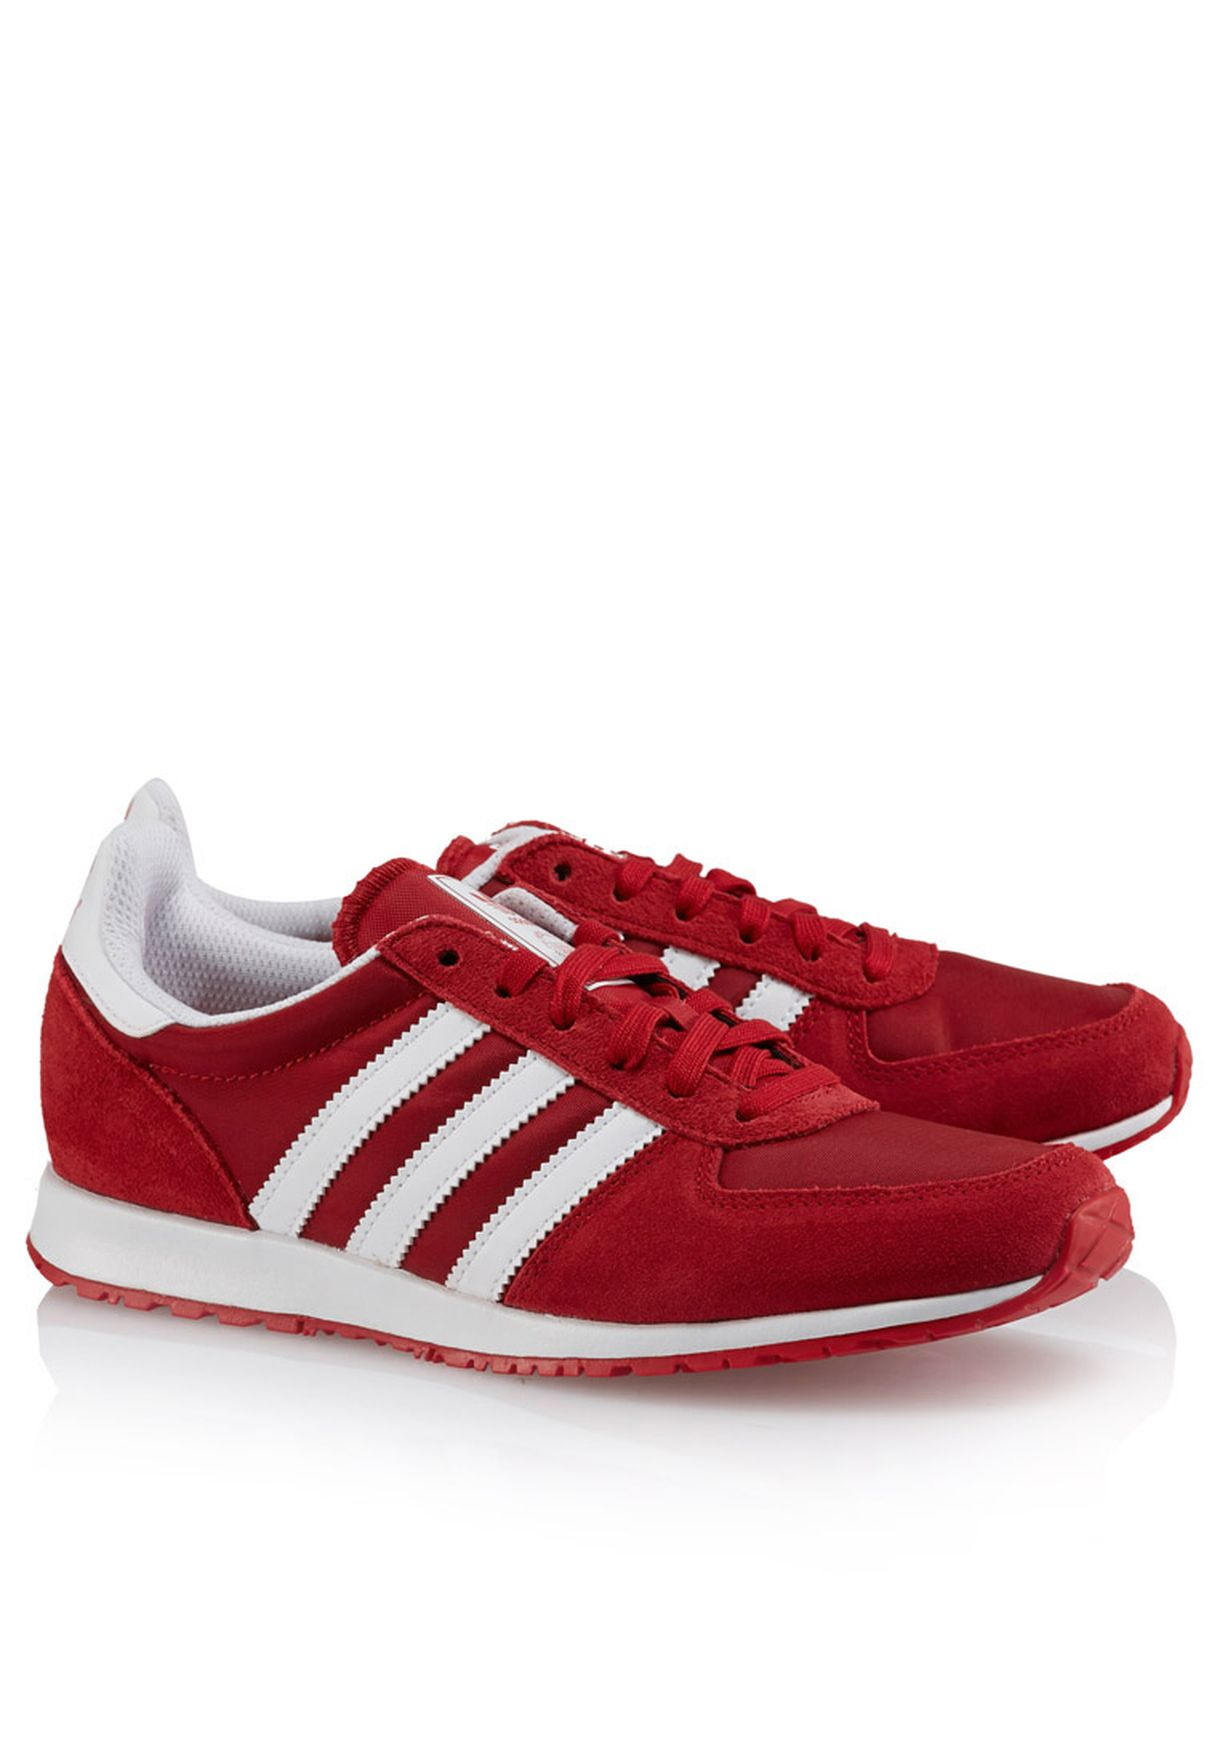 promo code d549f 6dc5d Shop adidas Originals red Adistar Racer Sneakers M20801 for Women in Kuwait  - AD478SH14FAB